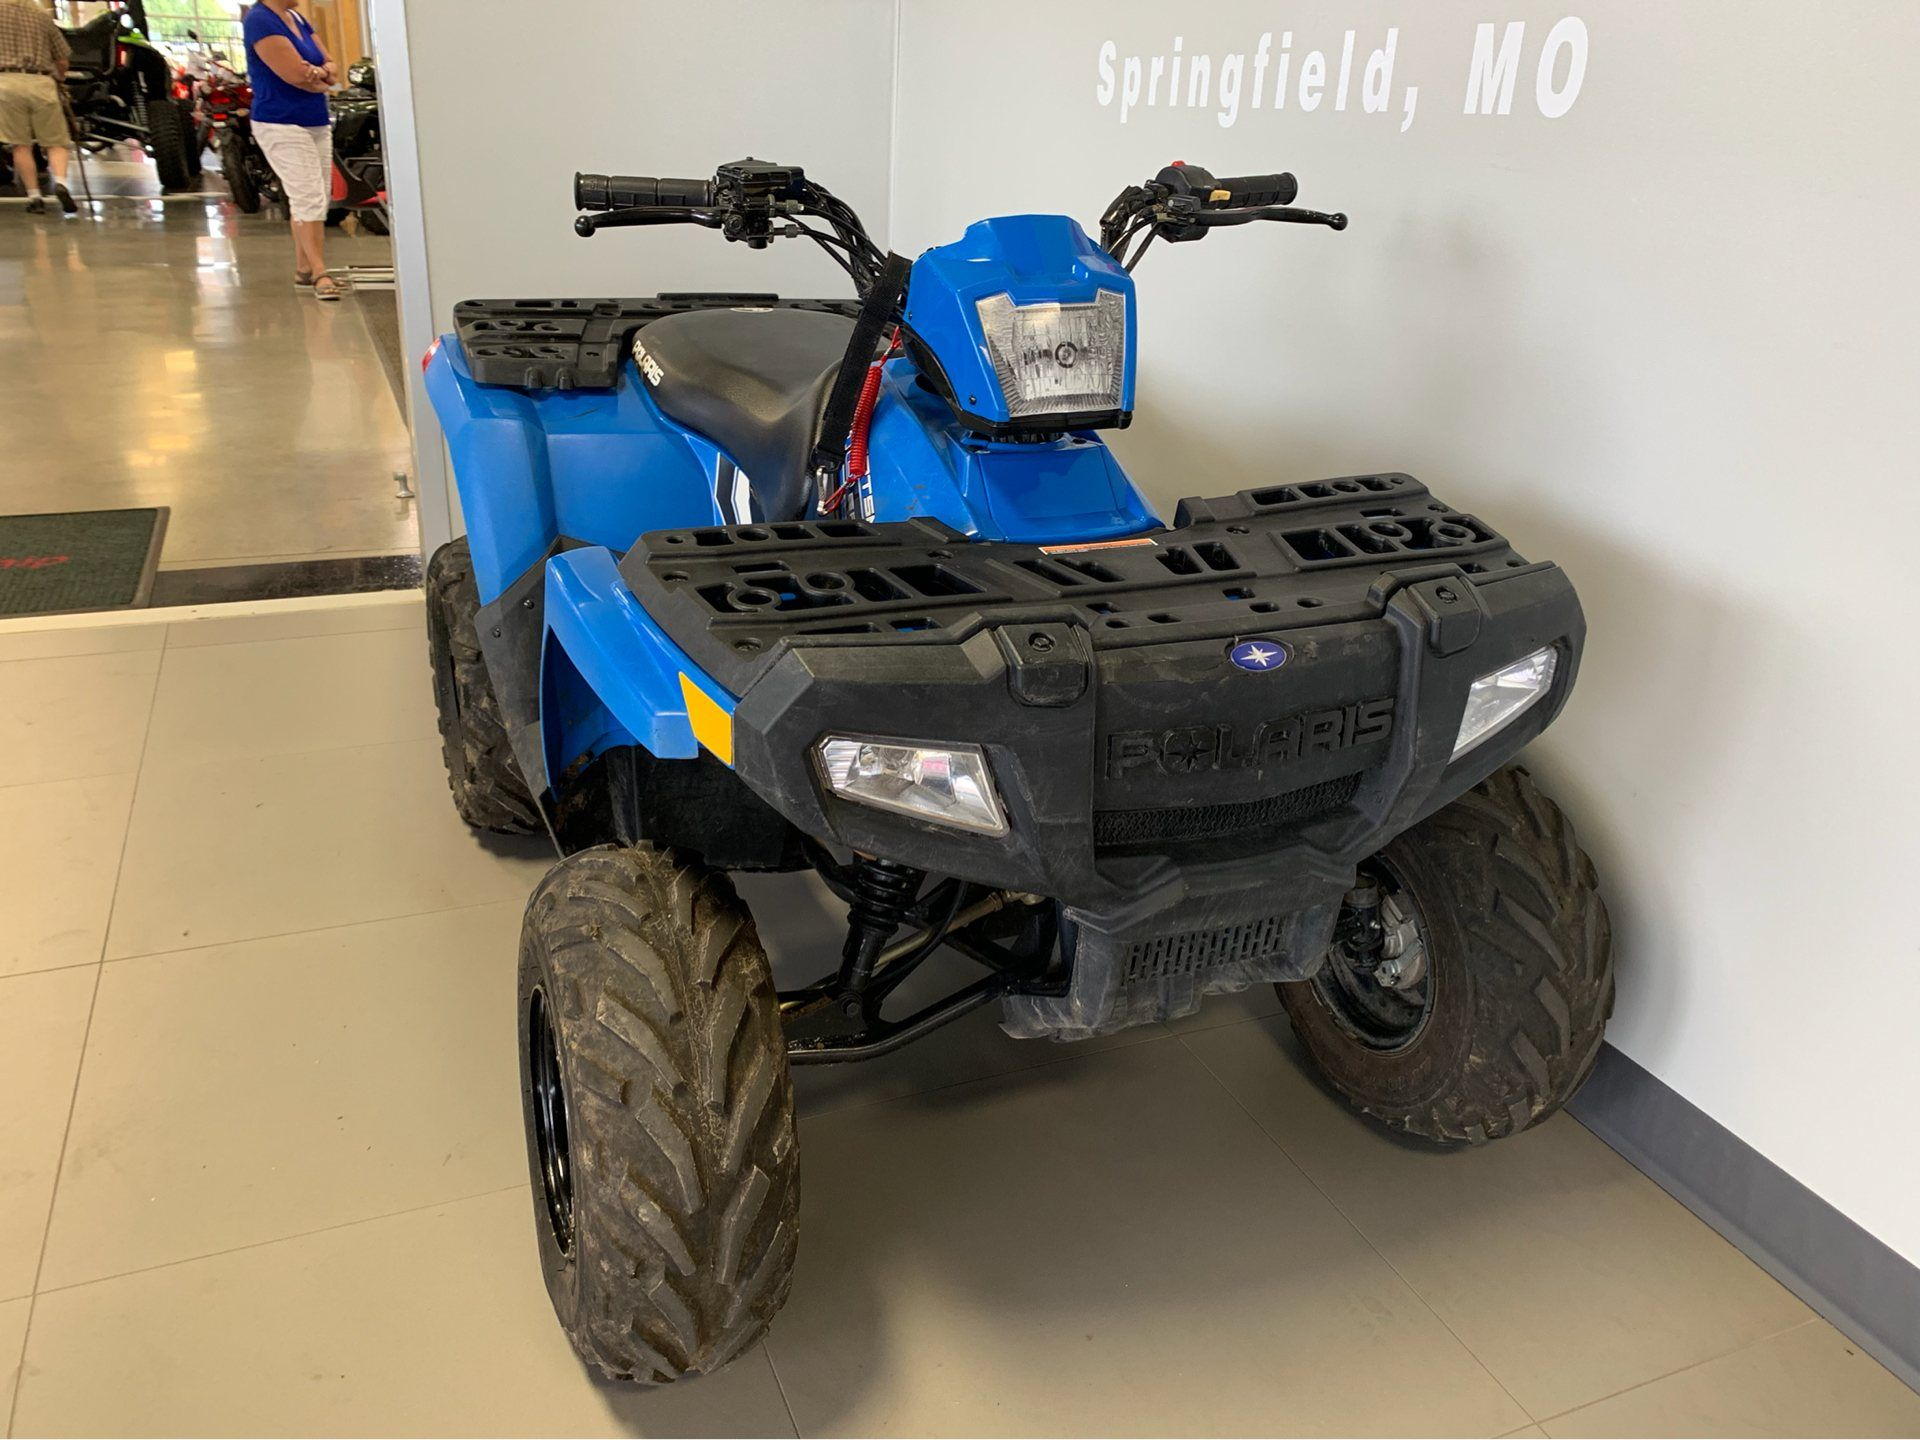 2019 Polaris Sportsman 110 EFI in Springfield, Missouri - Photo 10